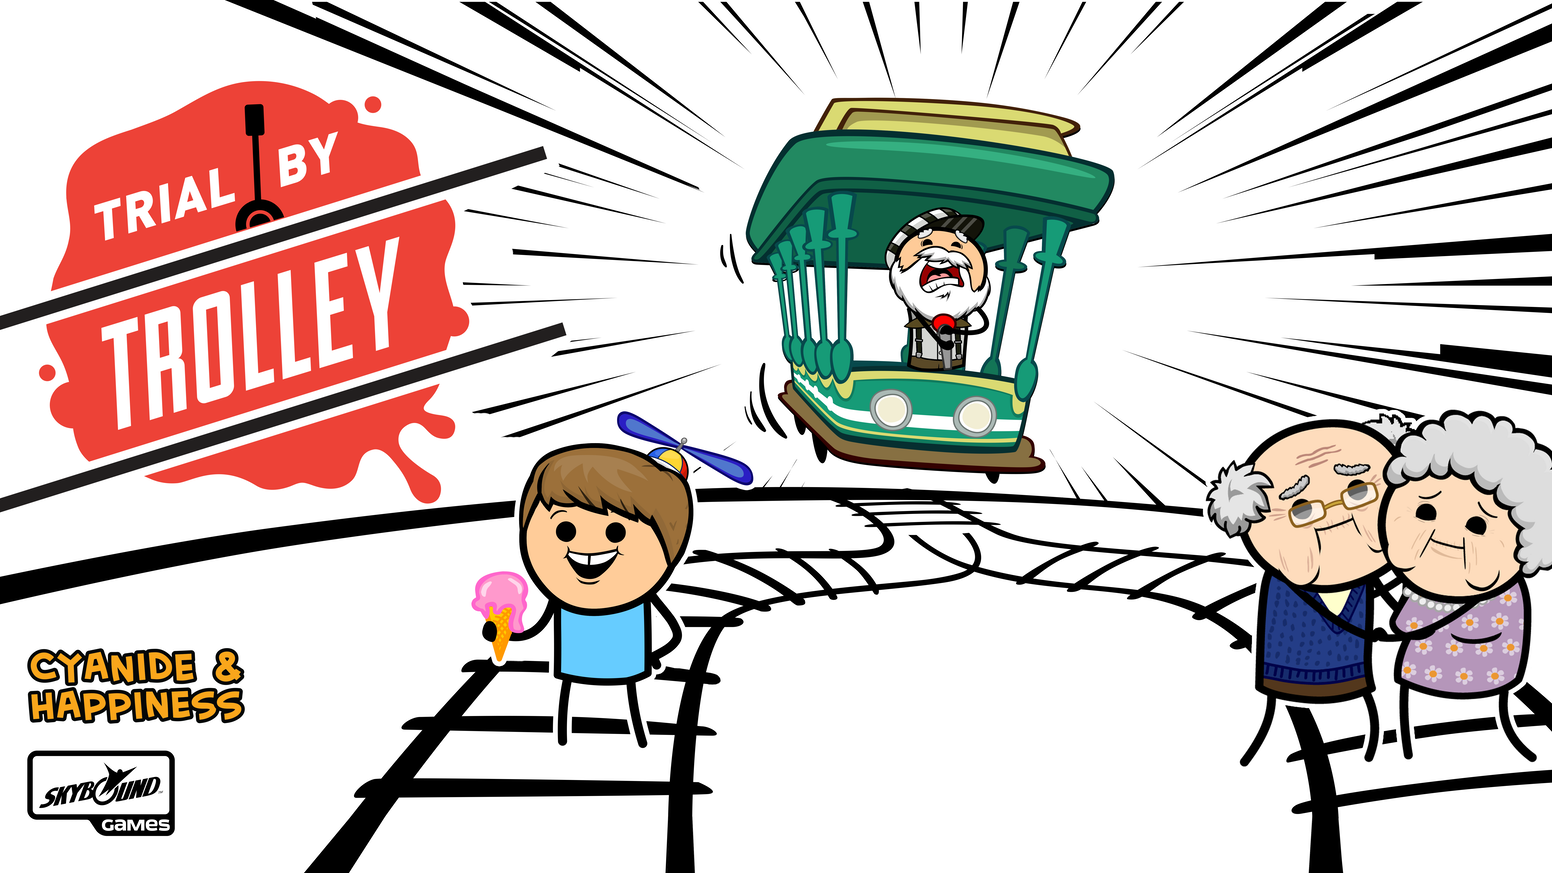 A party game of moral dilemmas and trolley murder.